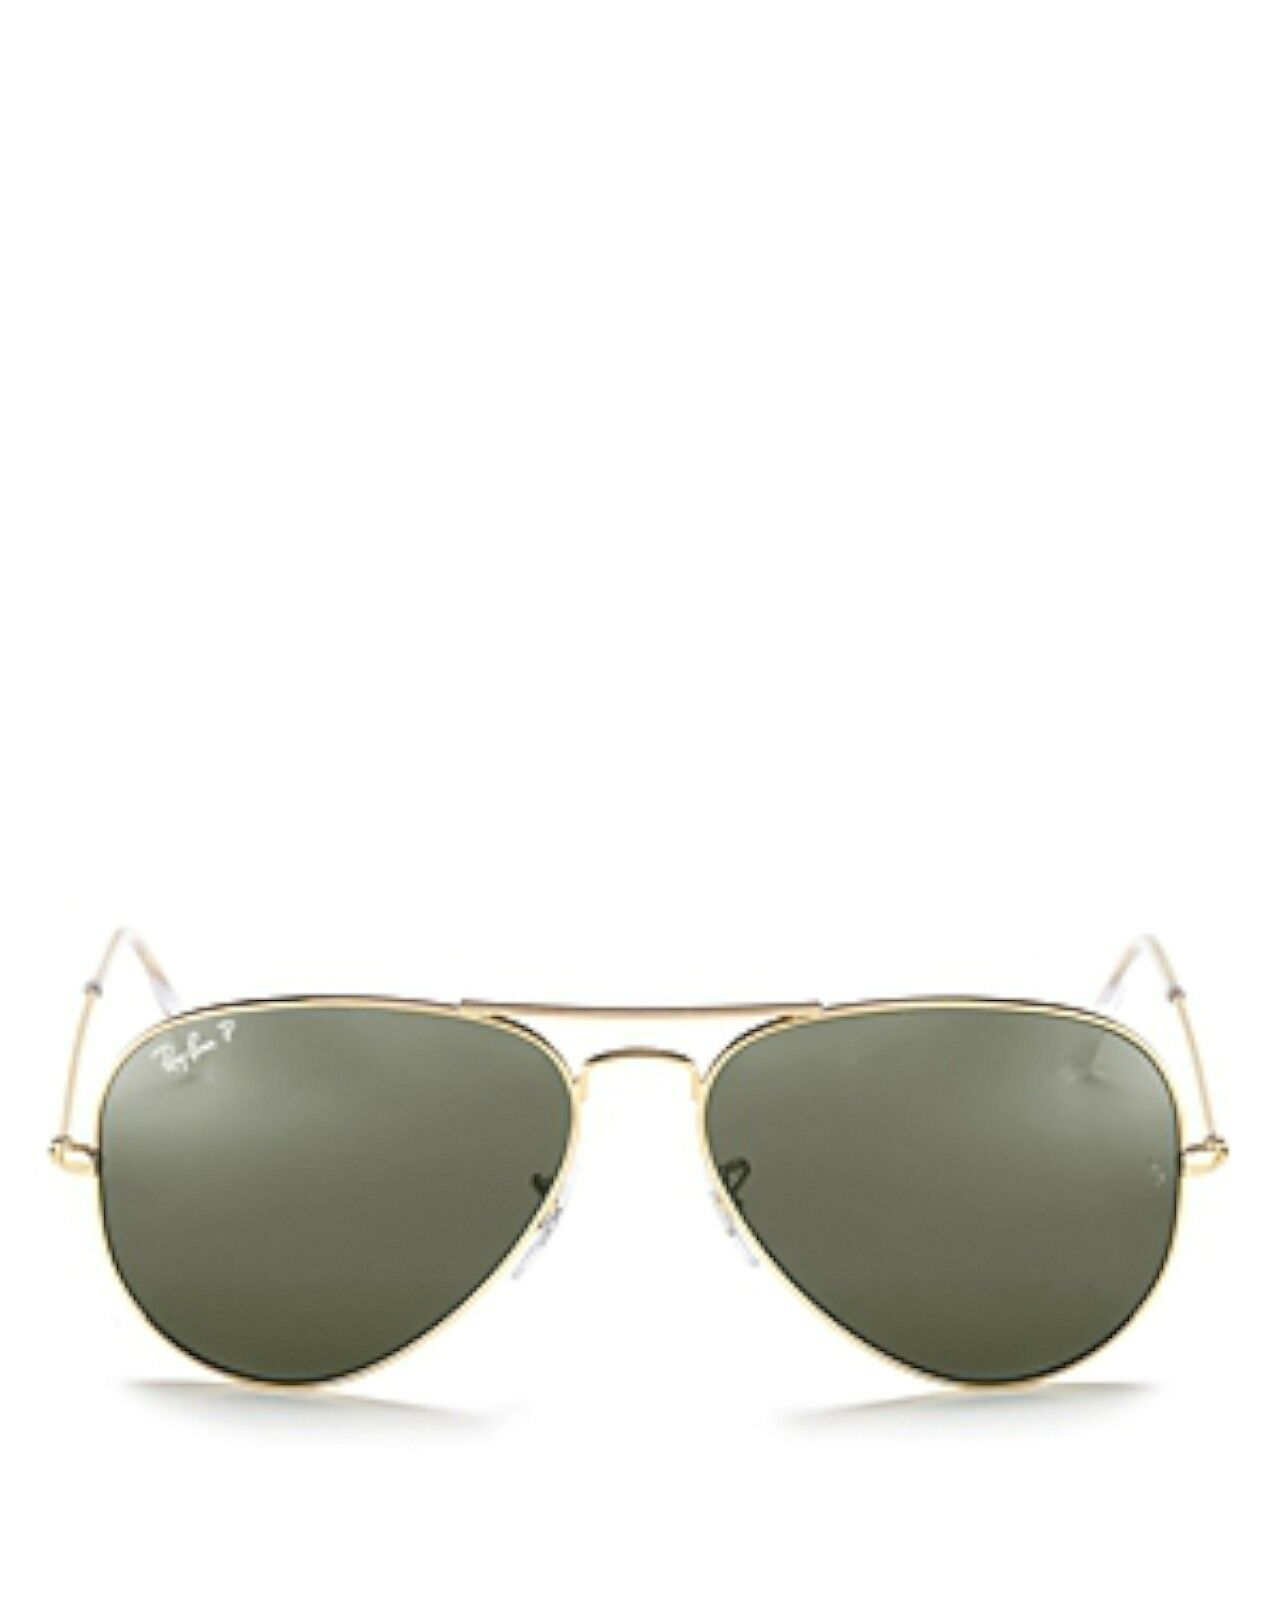 81a1d23fae Ray-Ban Aviator Classic Sunglasses RB3025 001 58 62-14 Green Classic ...